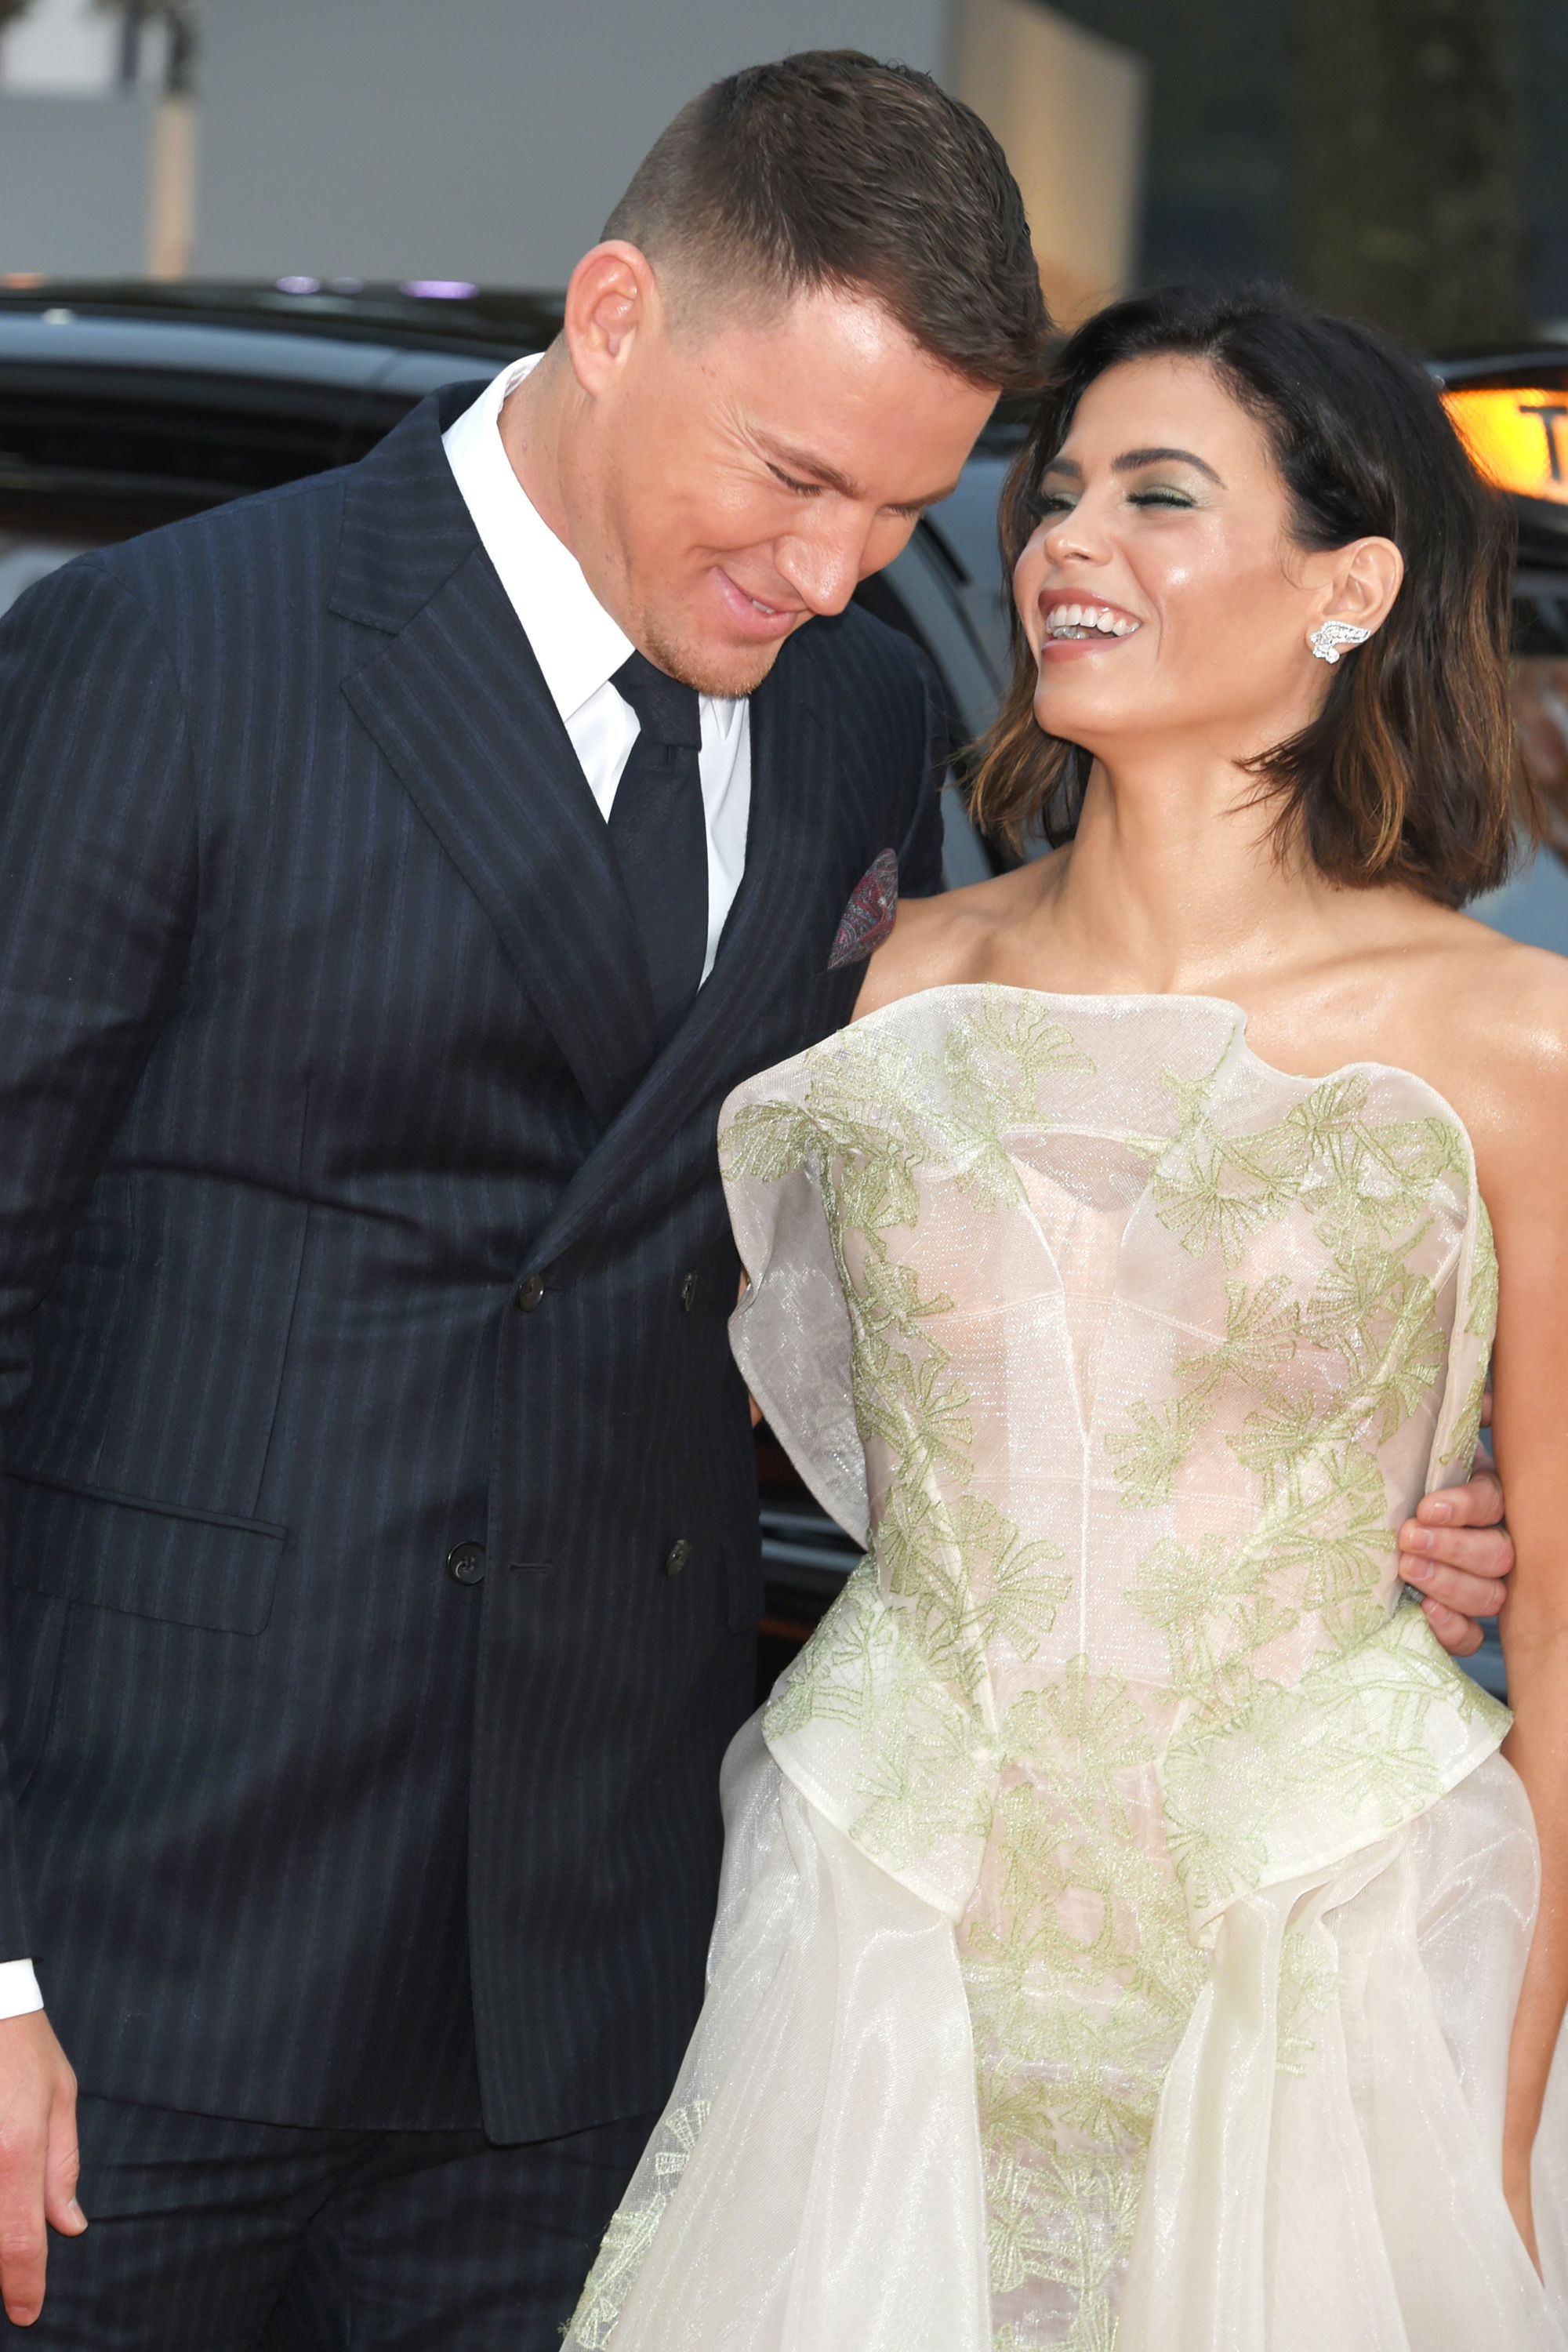 Channing Tatum Jenna Dewan Photos — Channing Jenna Love story